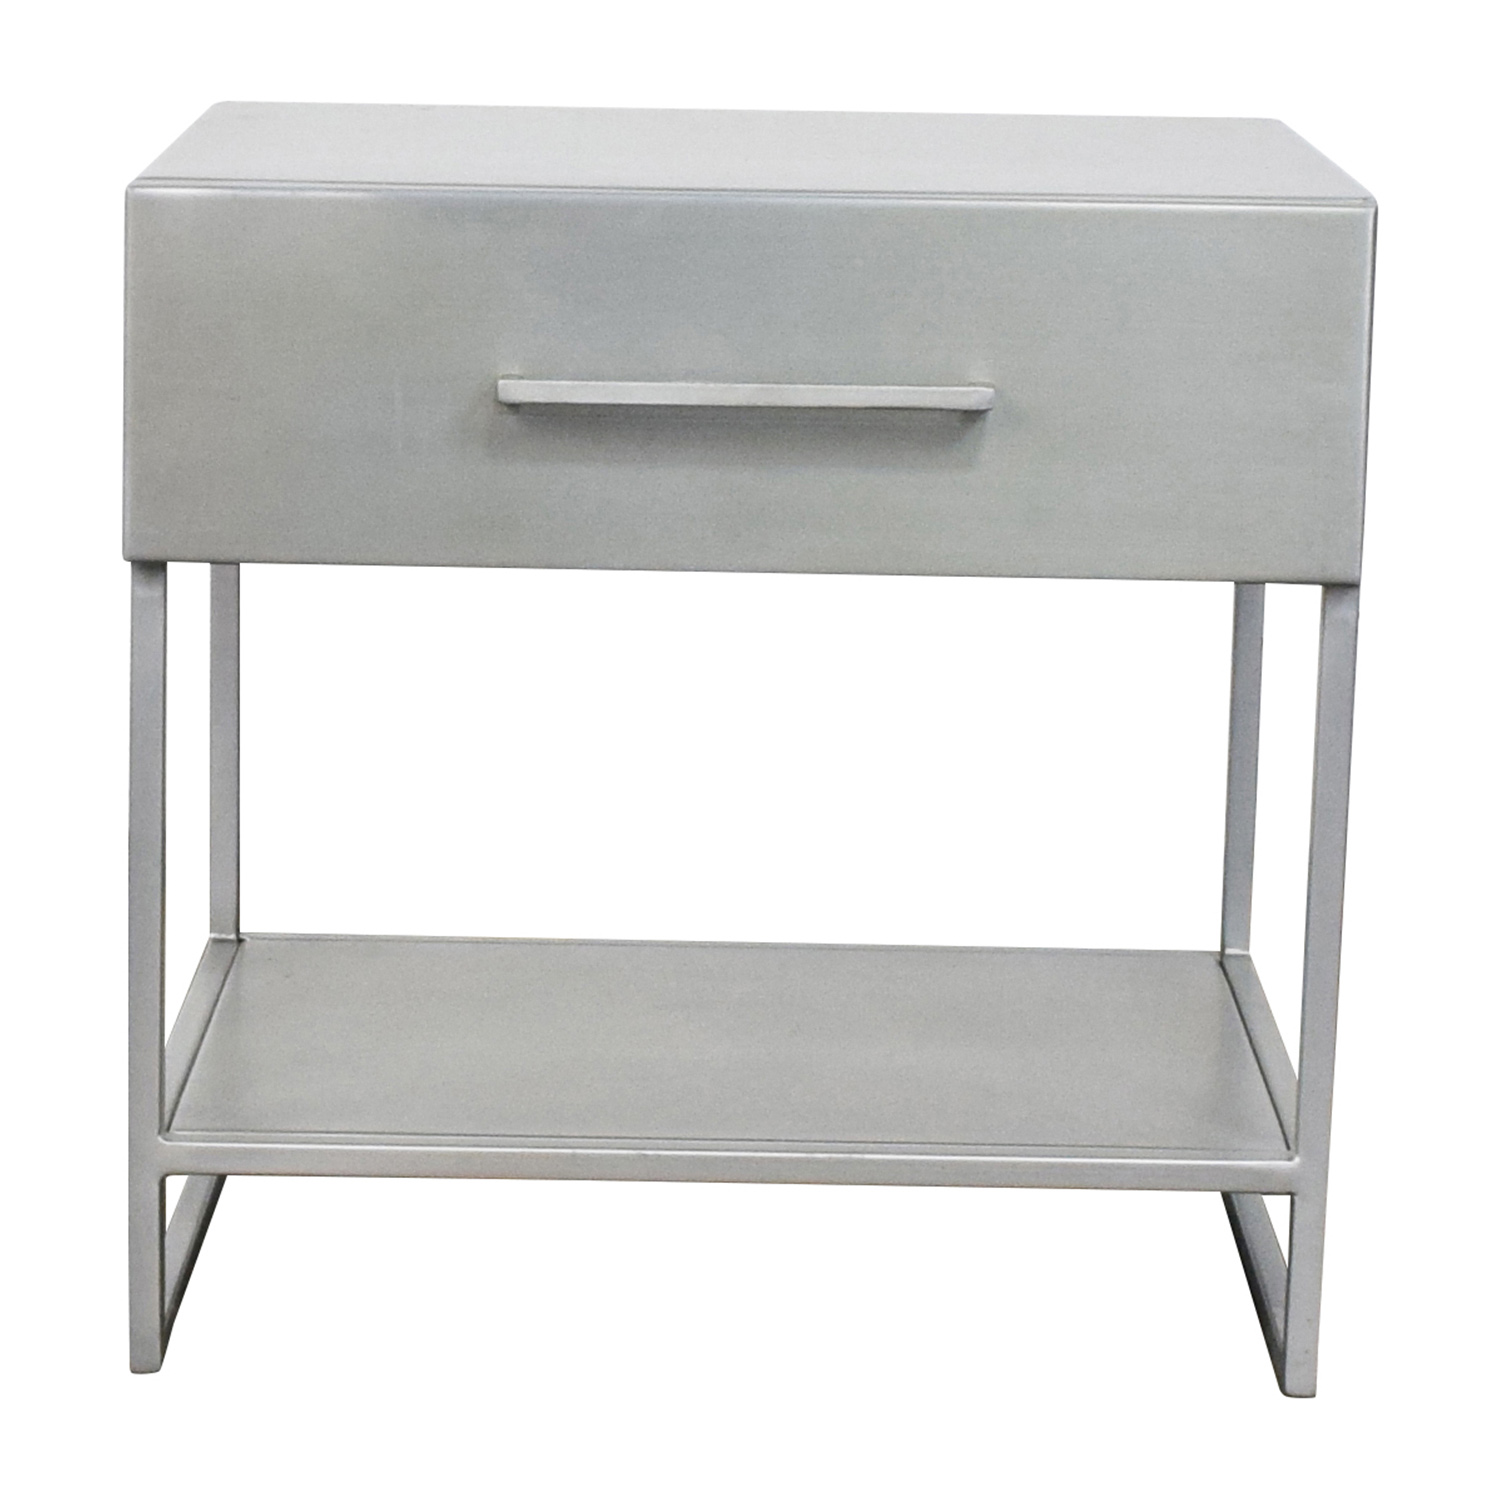 CB2 CB2 Proof Metal Night Table price